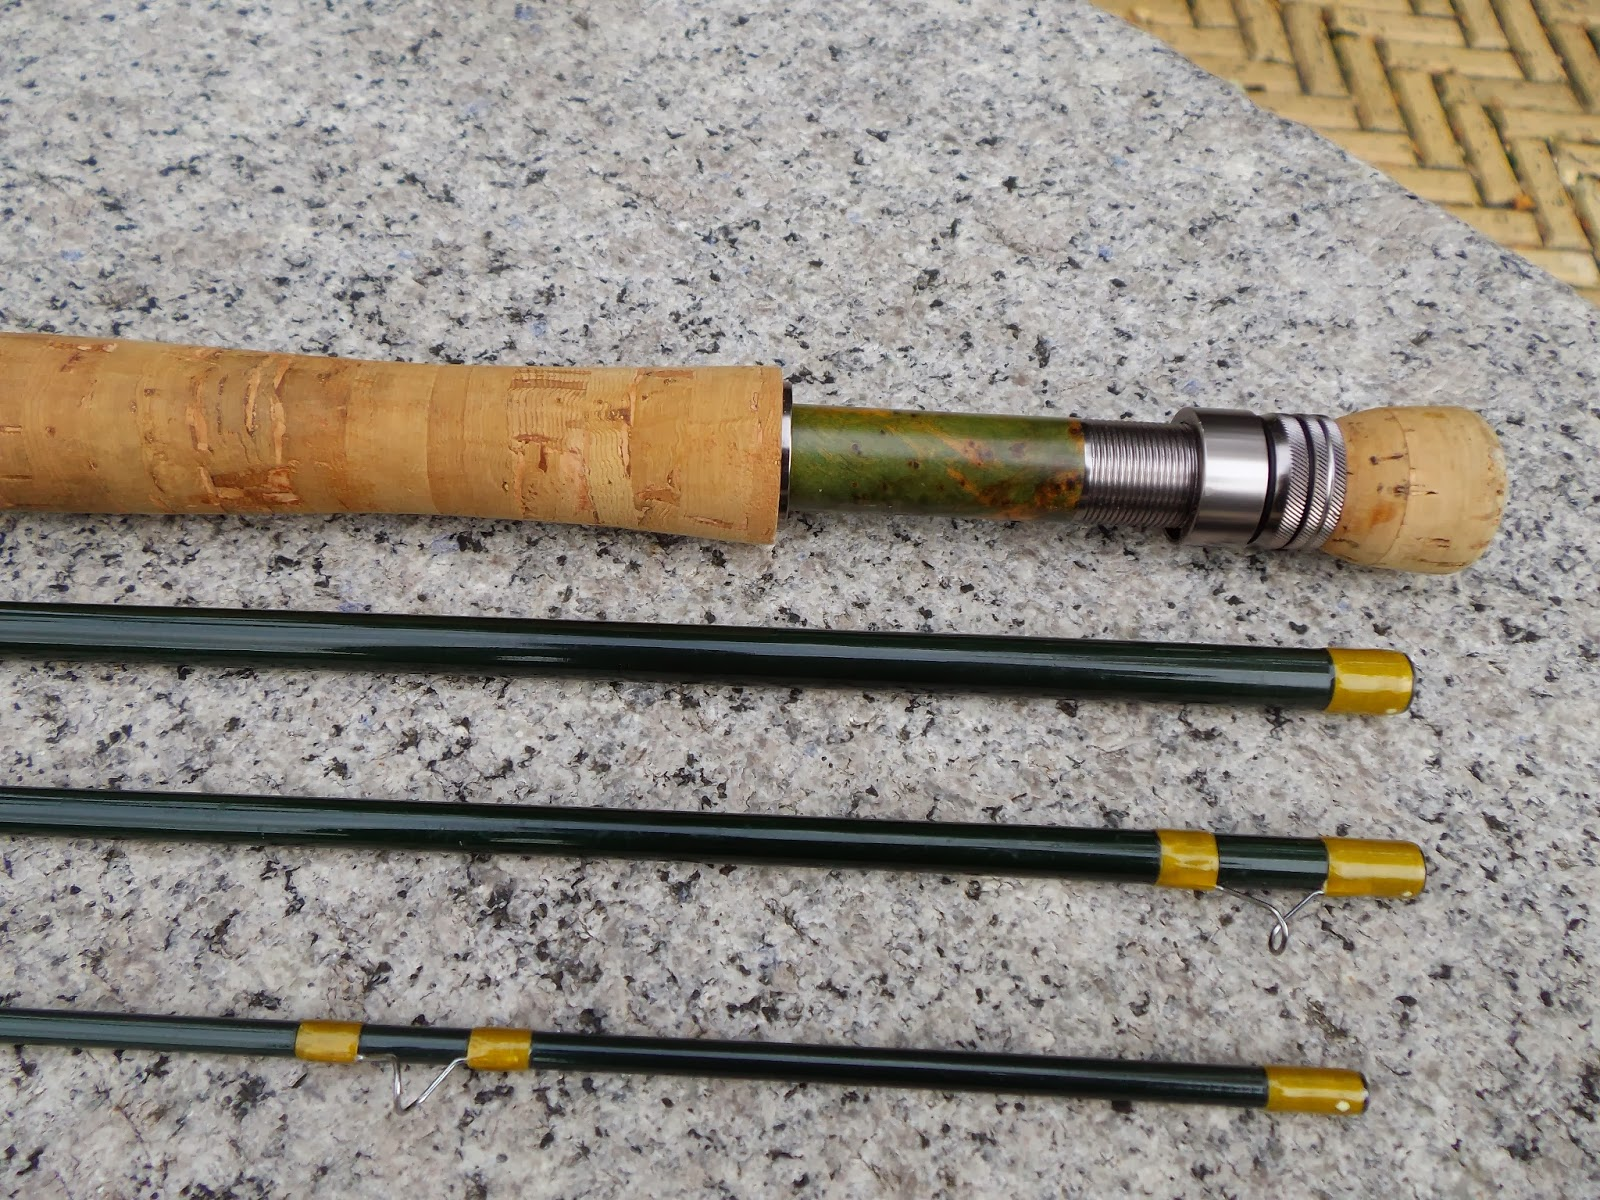 Eleven foot custom made fly rods the great lakes of nyc for Fishing rod blanks